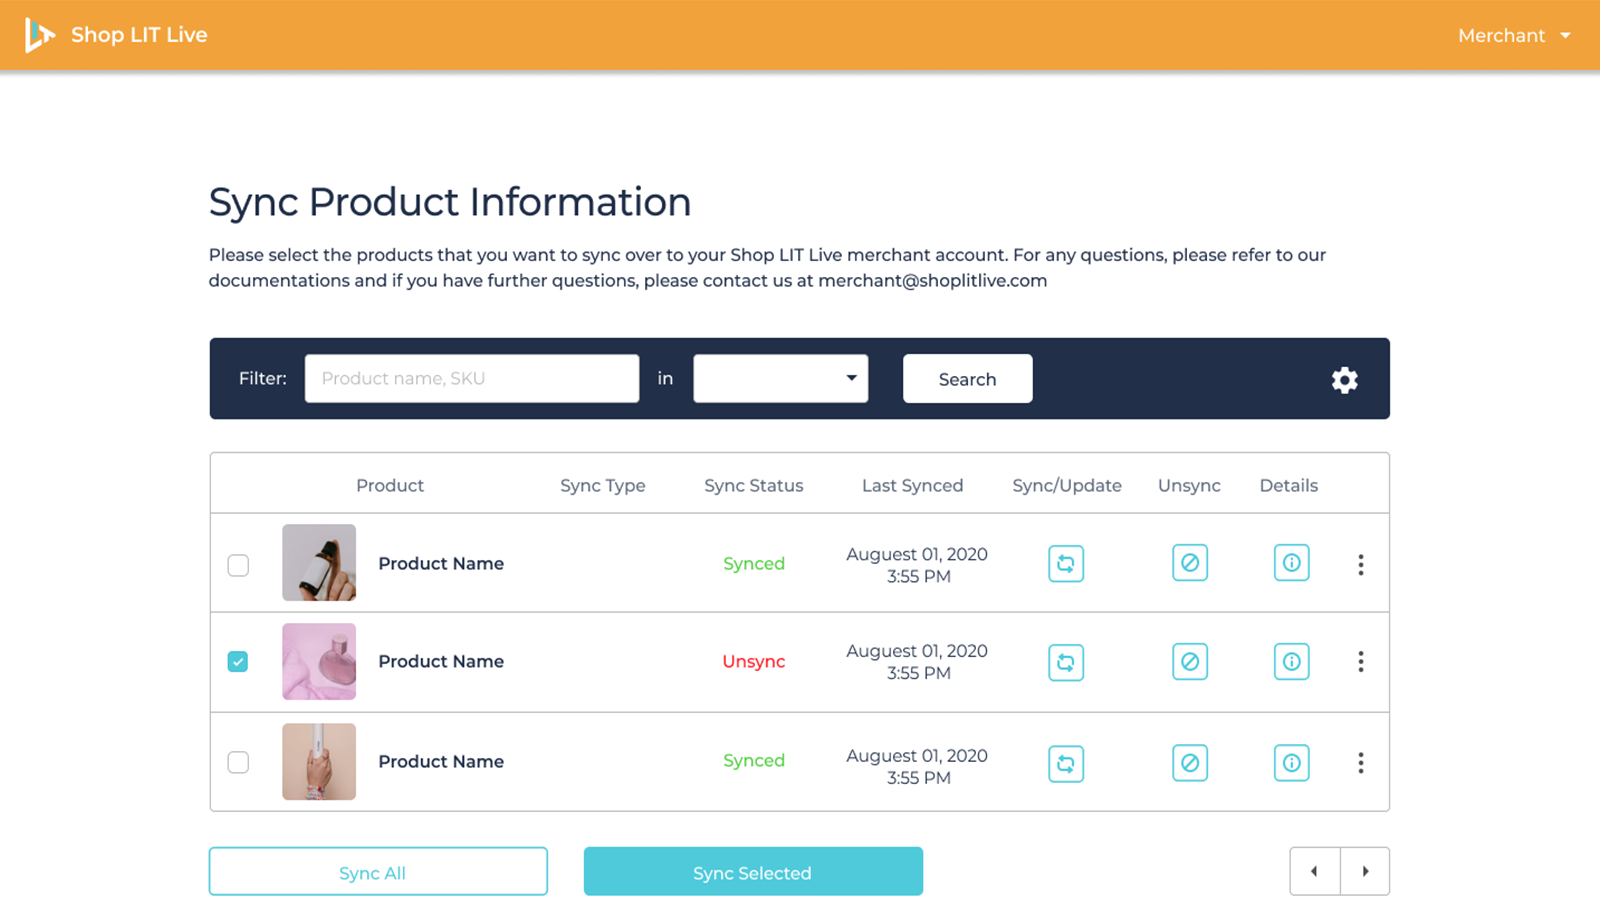 Syncing Products from Shopify to Shop Lit Live